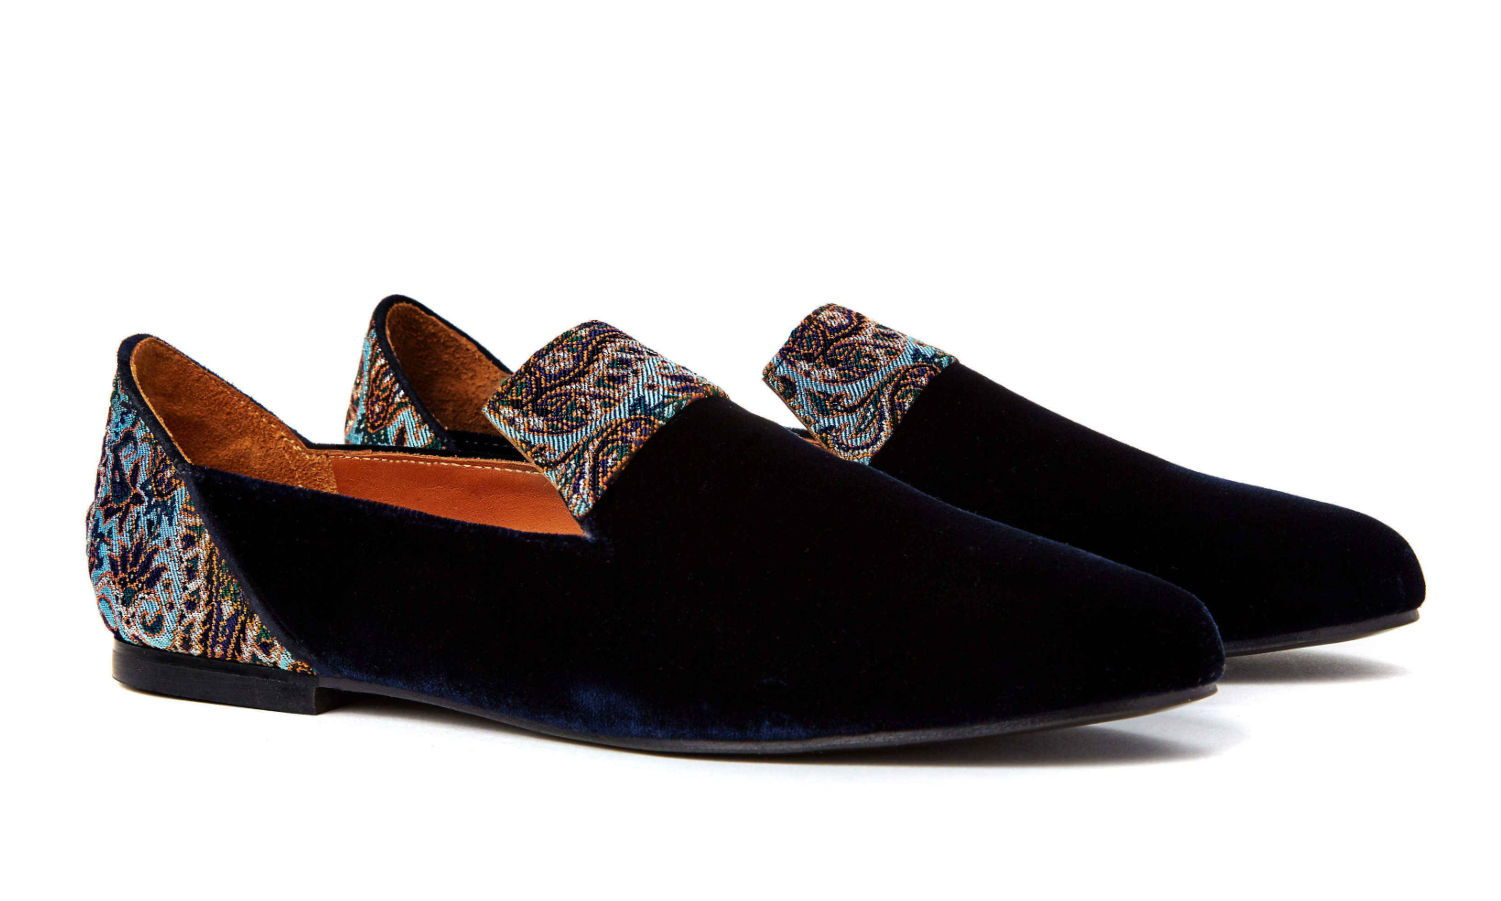 Bote A Mano Flat Loafer Shoes  Women Uk Made in Italy